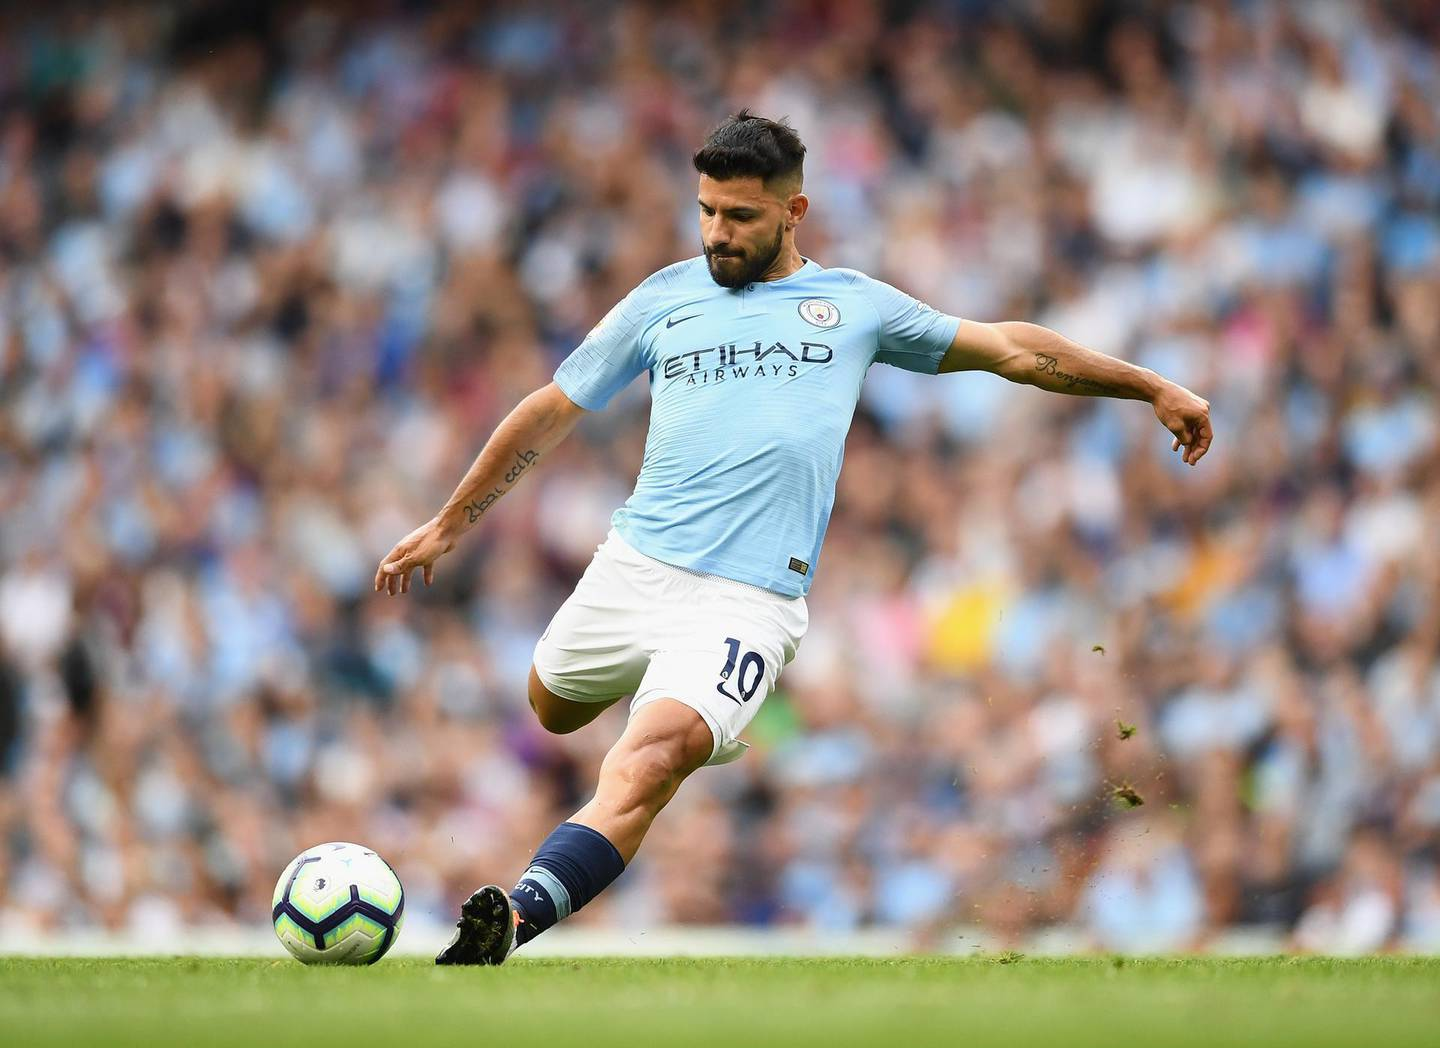 MANCHESTER, ENGLAND - SEPTEMBER 01:  Sergio Aguero of Manchester City in action during the Premier League match between Manchester City and Newcastle United at Etihad Stadium on September 1, 2018 in Manchester, United Kingdom.  (Photo by Clive Mason/Getty Images)